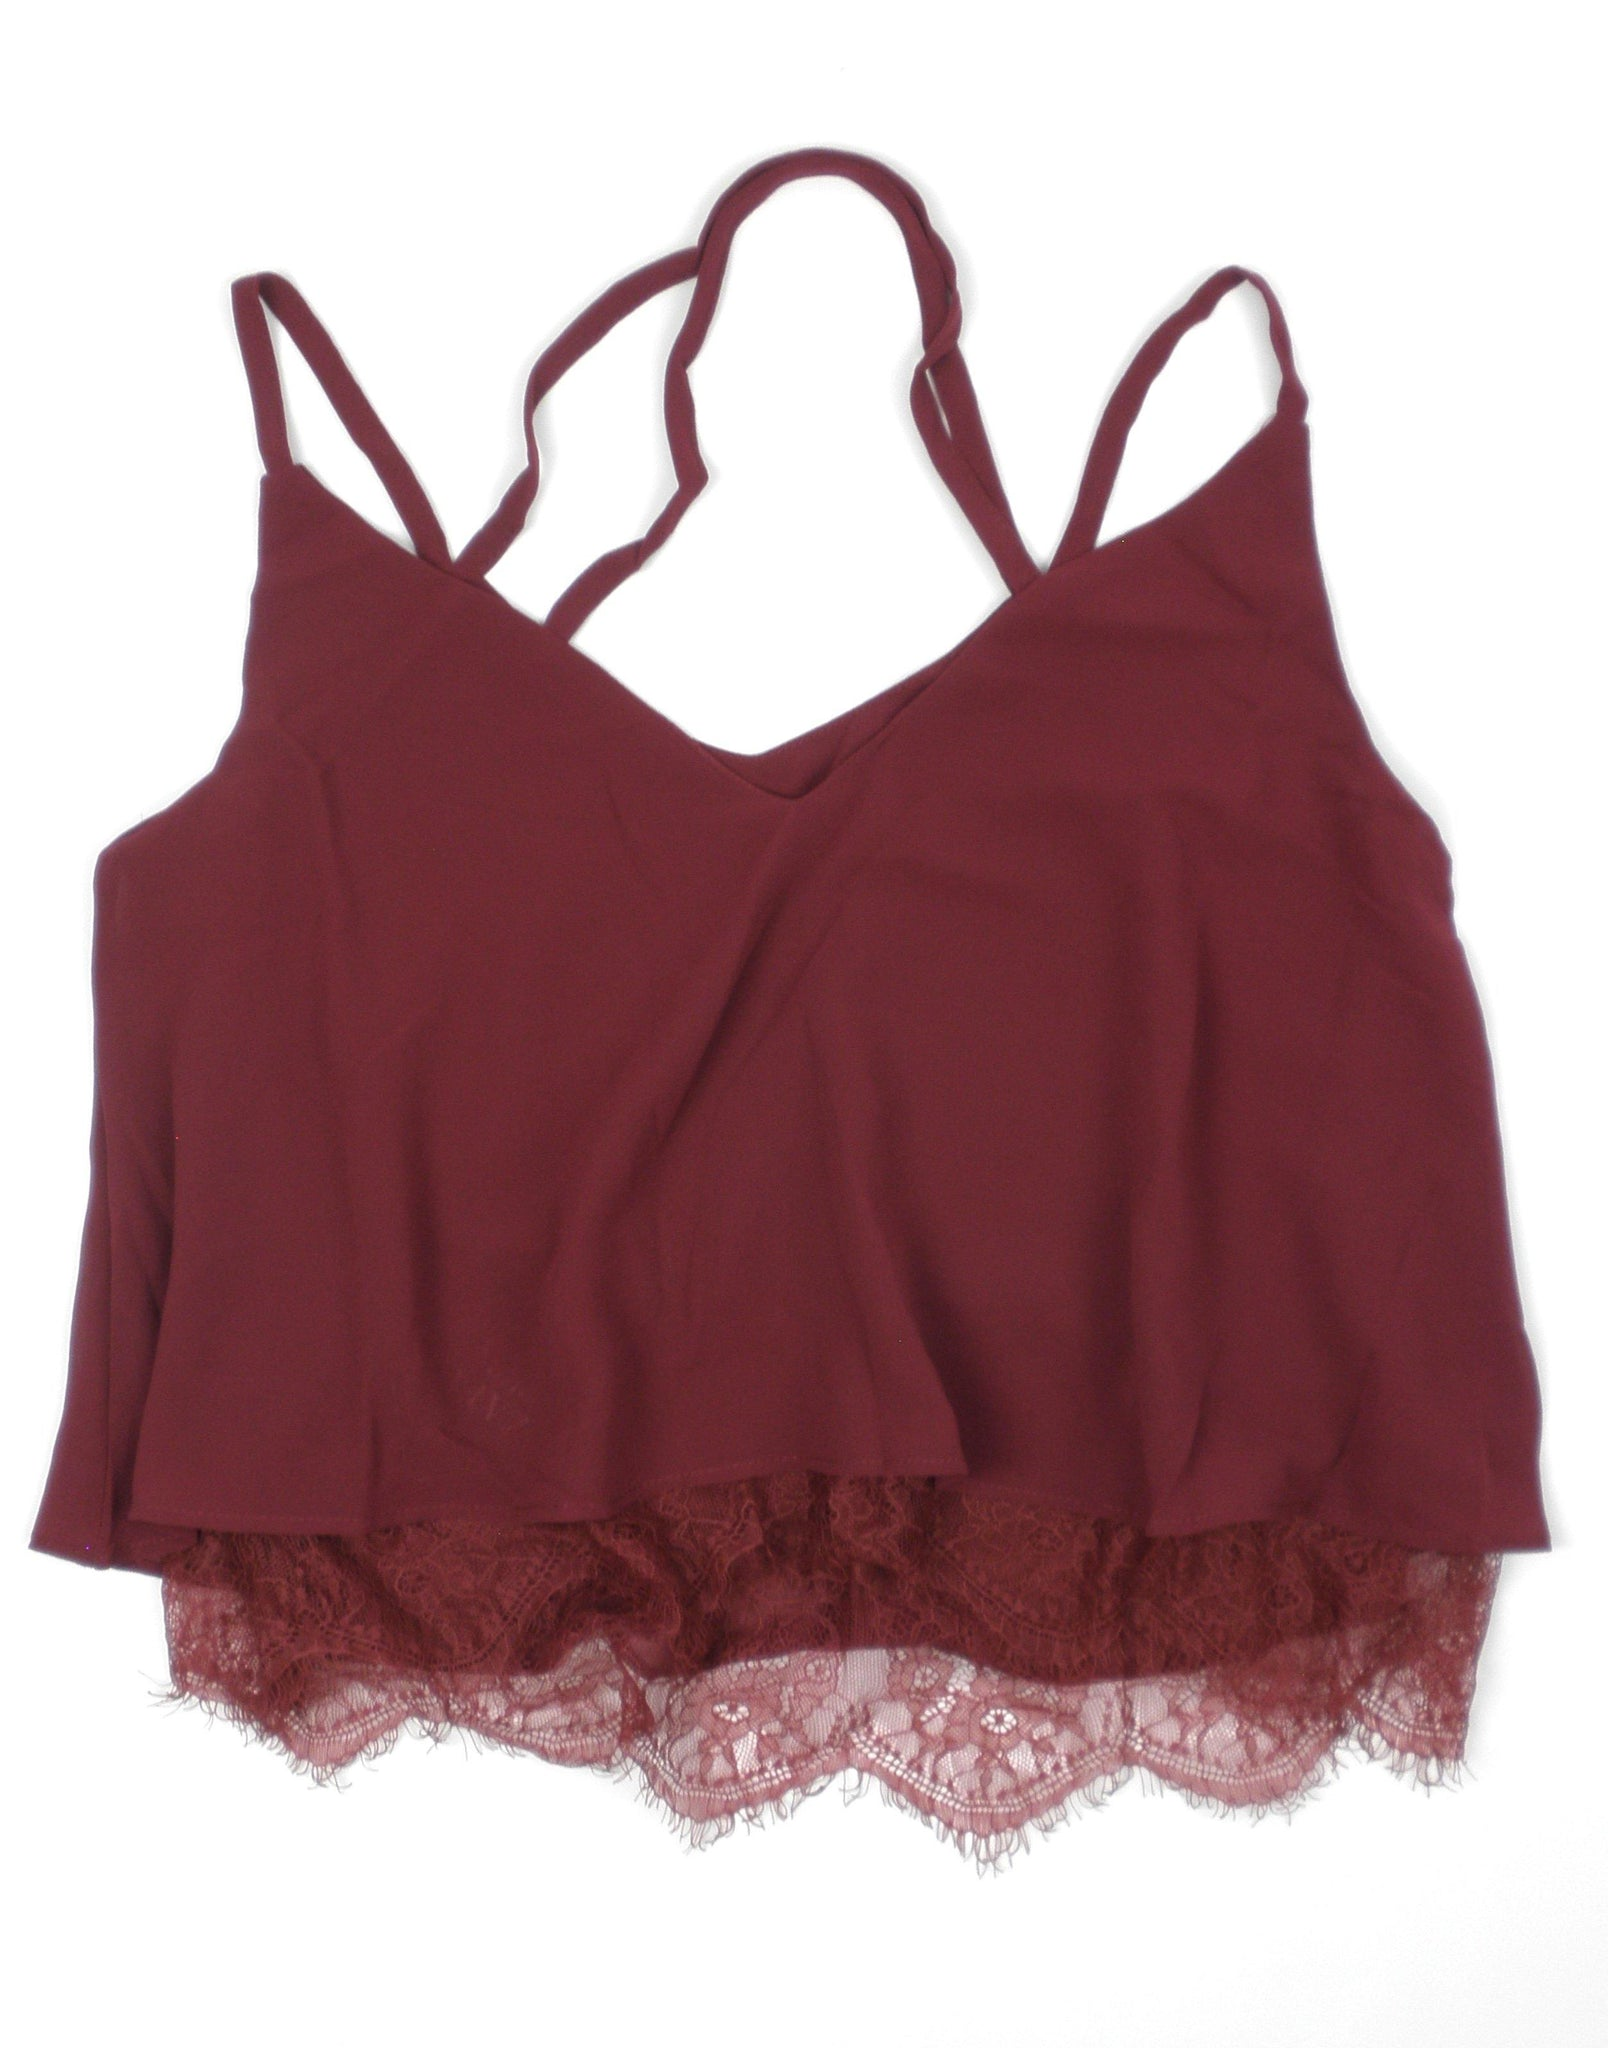 Zaful Dark Red Lace Top - Size Medium and Large